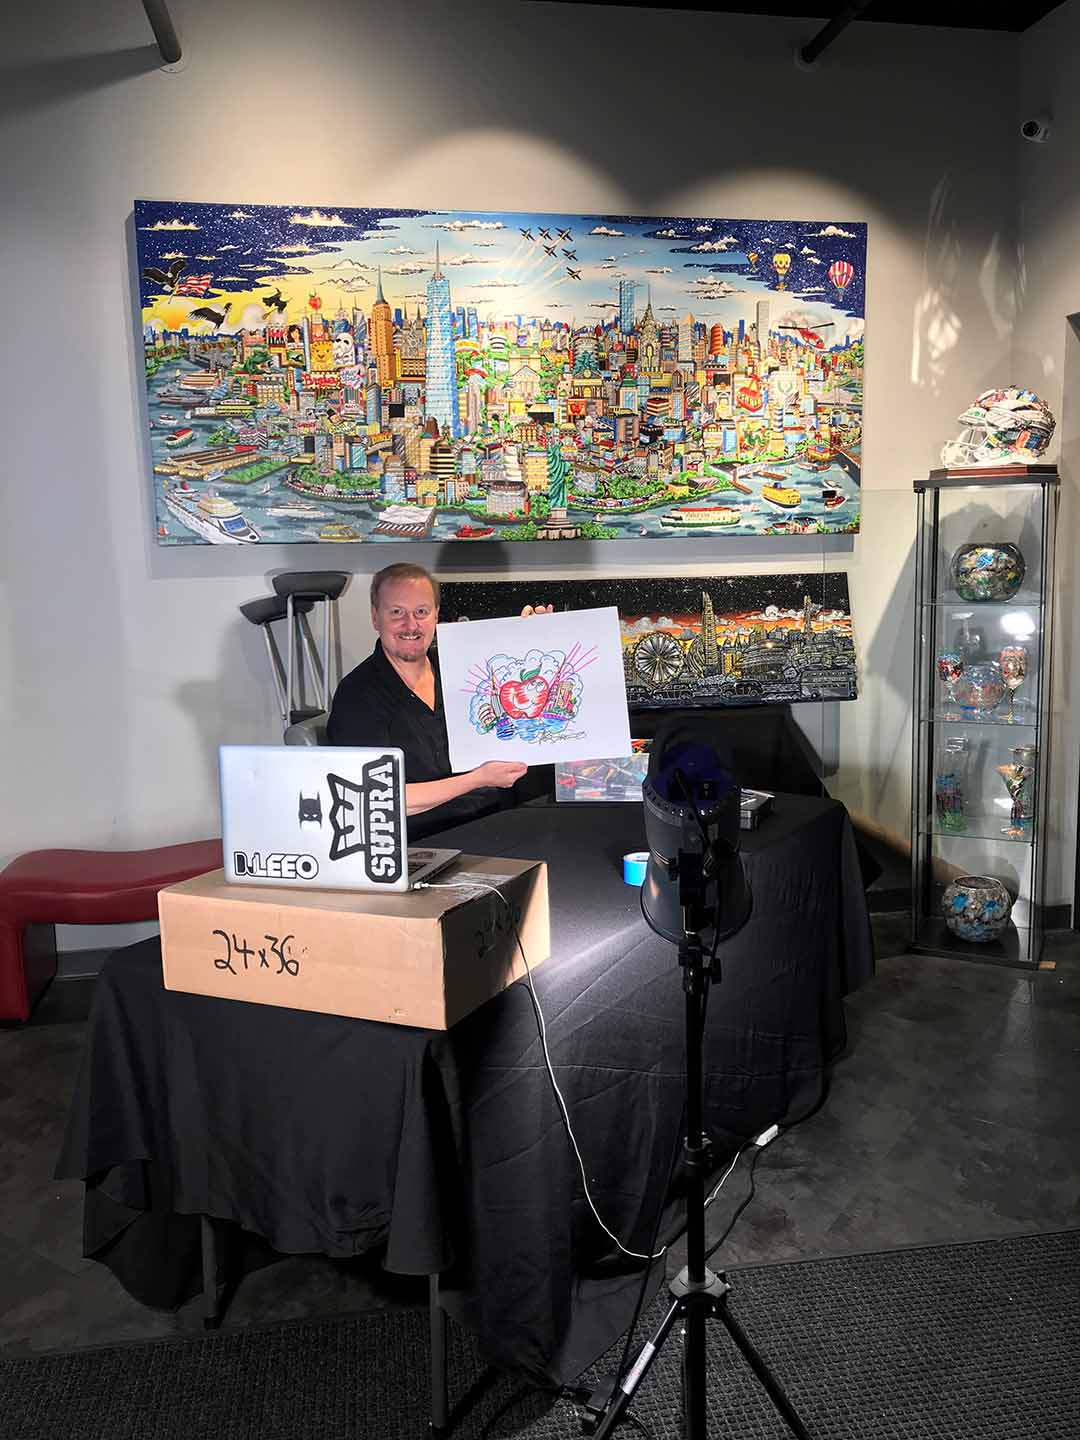 Charles Fazzino holding up a pop art doodle during his skype interview in his gallery.